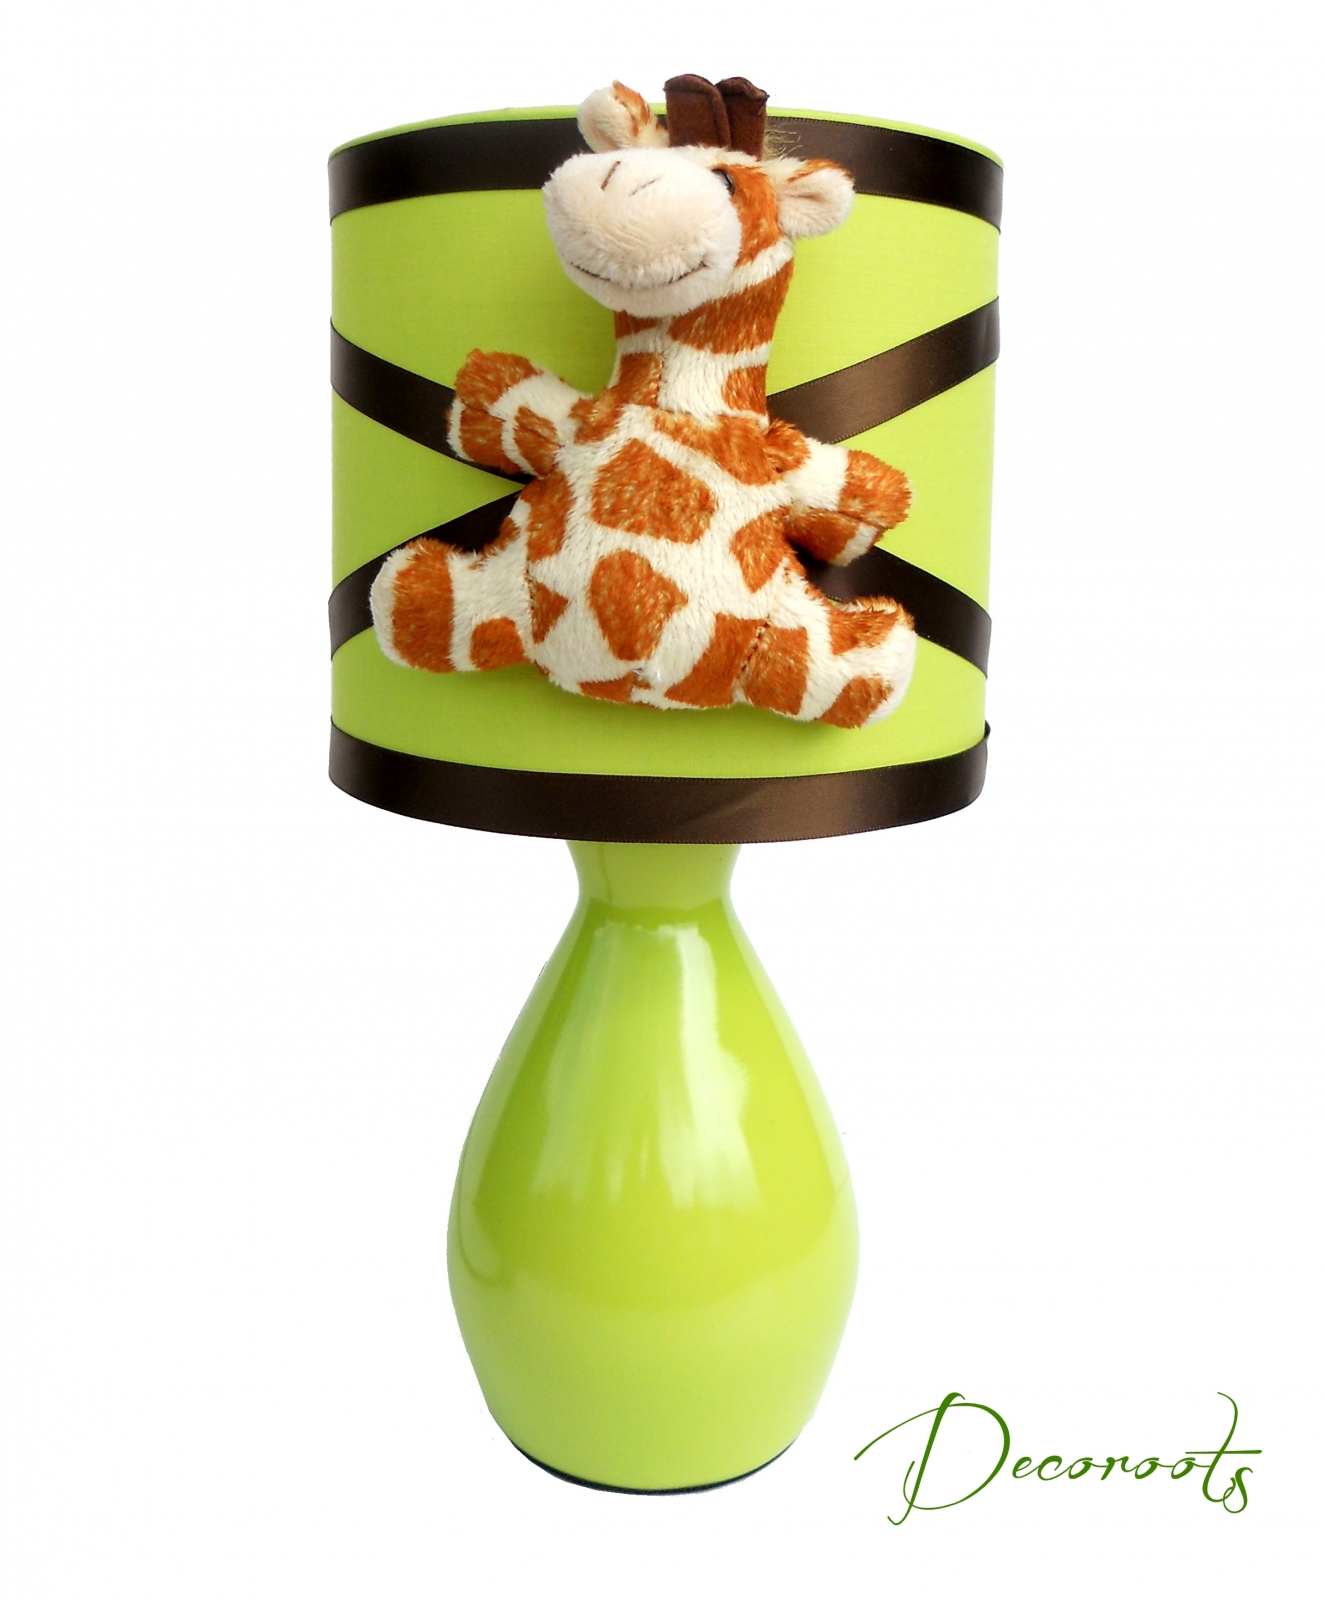 lampe de chevet enfant b b girafe vert anis enfant b b luminaire enfant b b decoroots. Black Bedroom Furniture Sets. Home Design Ideas